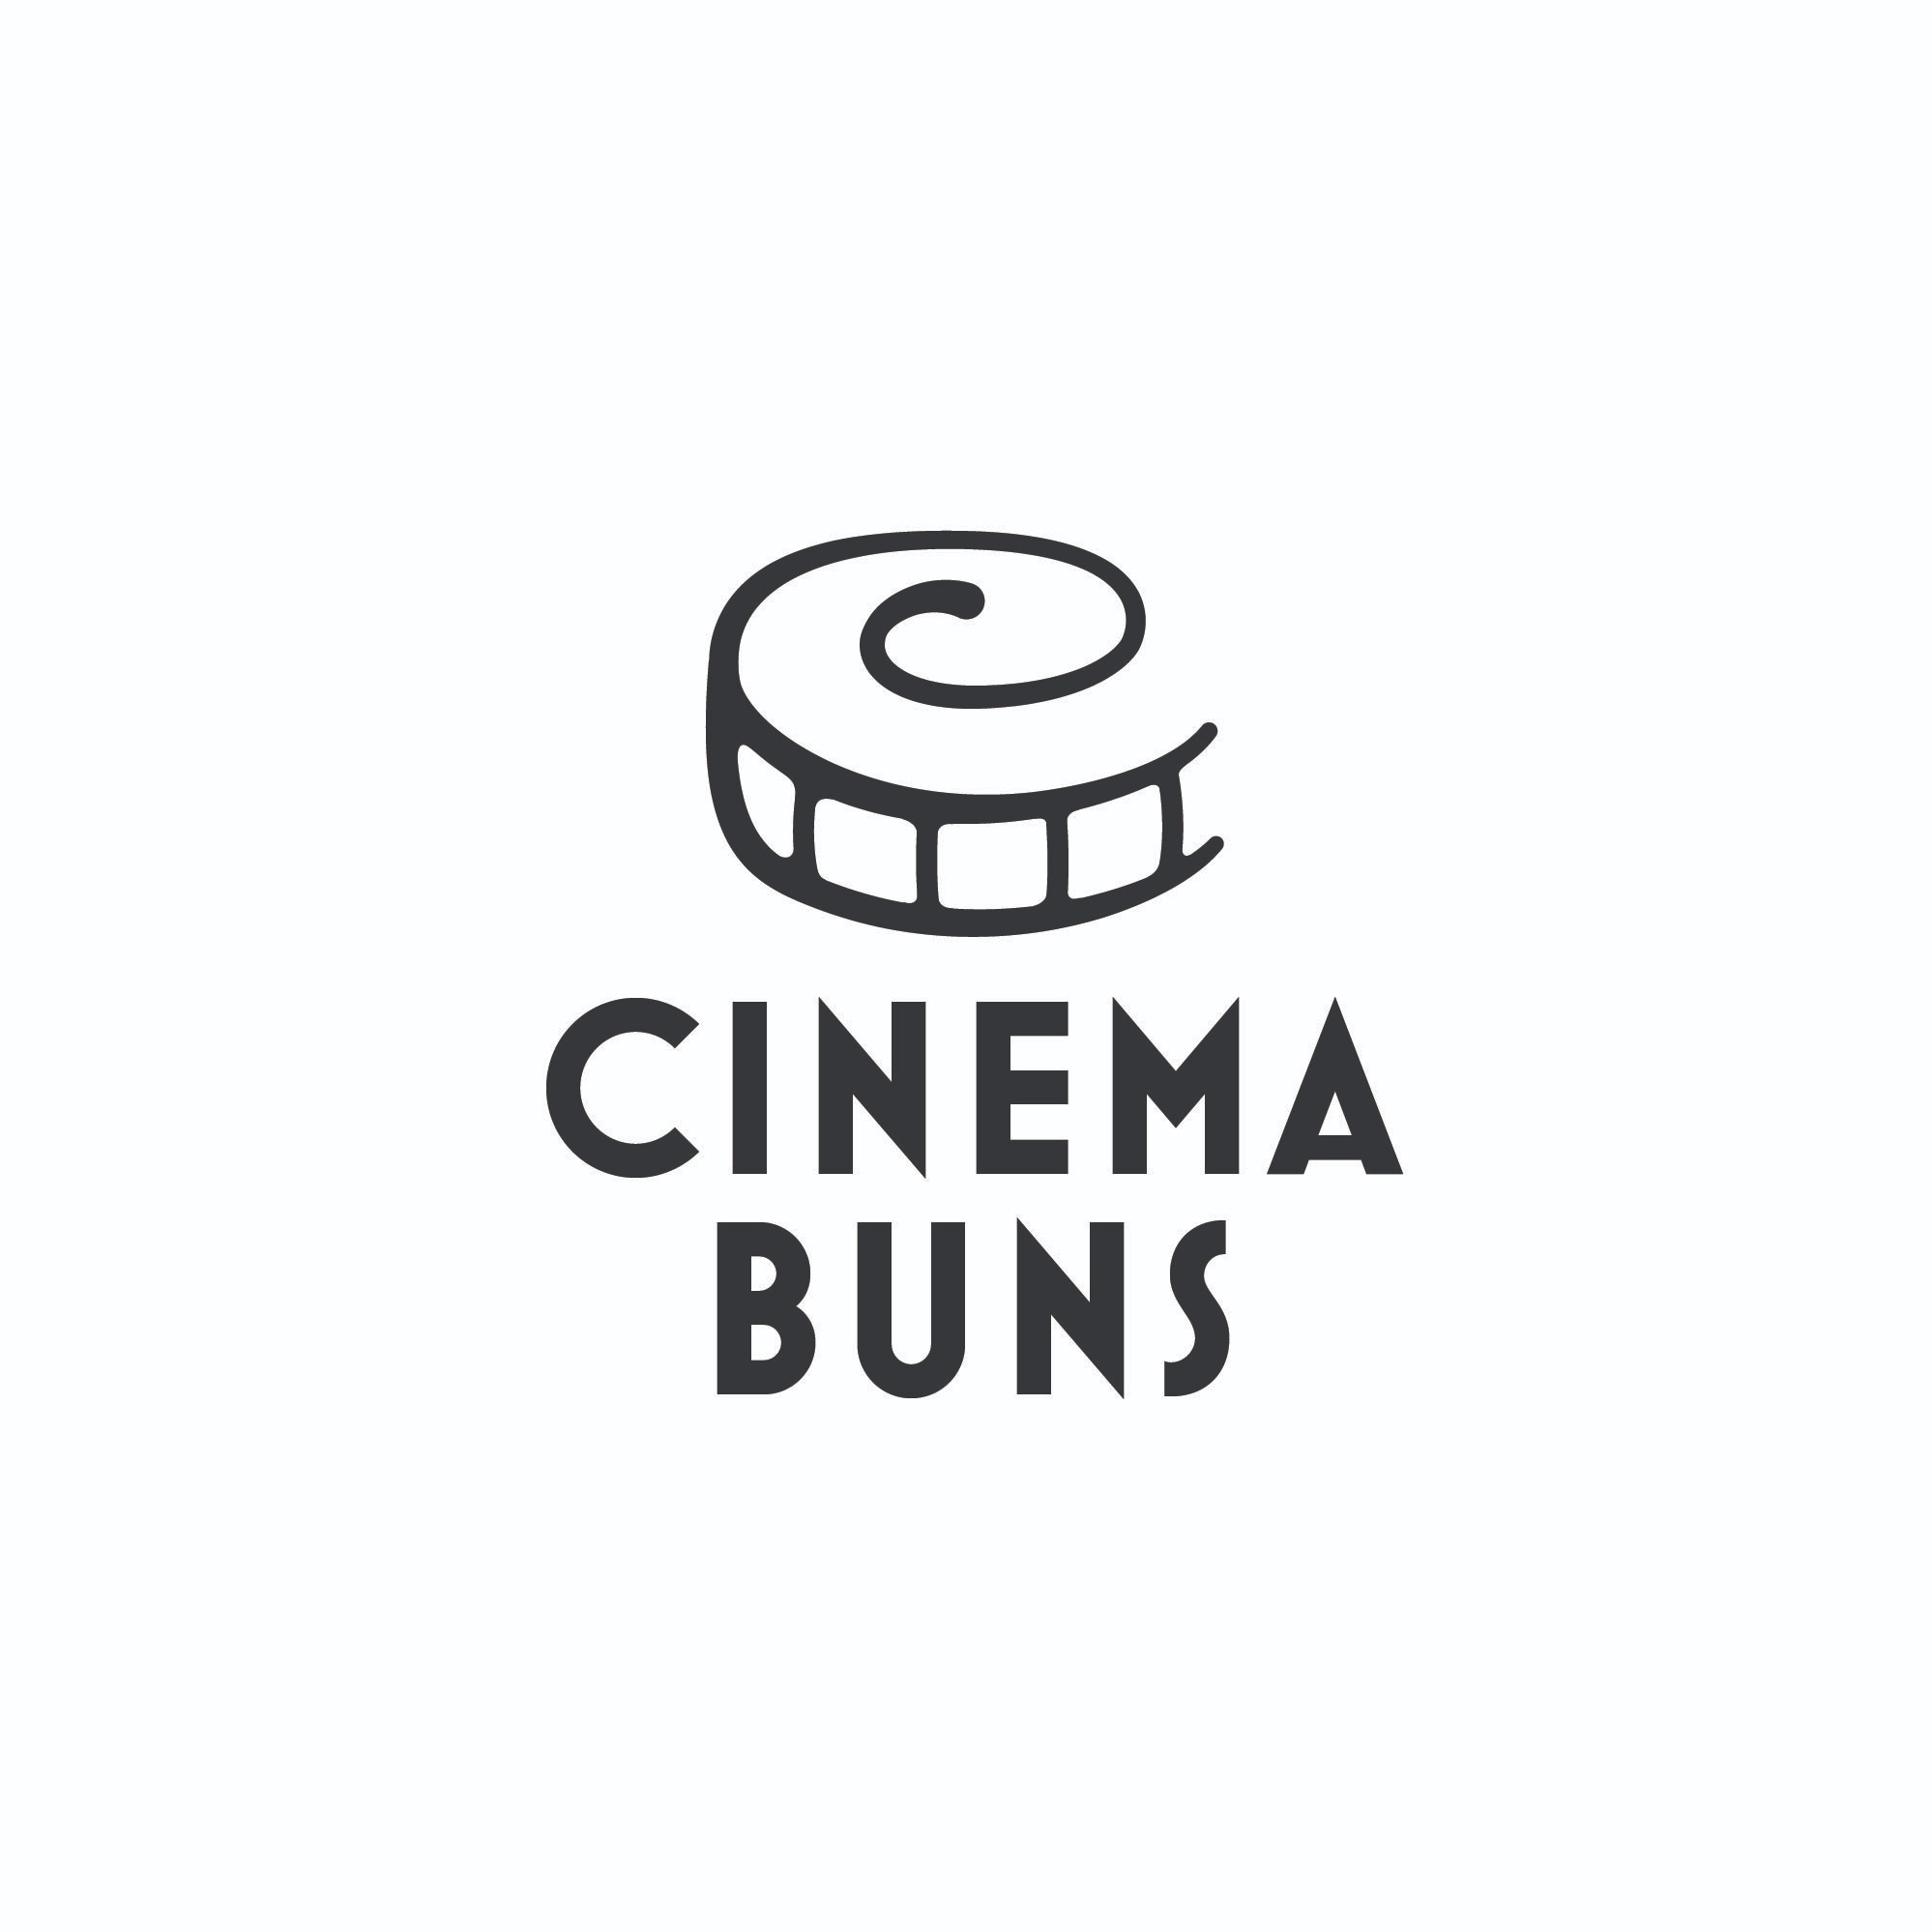 Final Logo - For the final logo, I decided to create a design that really captured the image of a cinnamon bun. I also wanted to add in the image of a film strip that finished the shape of the bun. I wanted the finished logo to be inviting and friendly. Choosing a sharp typeface for the logo type compliments the organic shape of the logo itself.